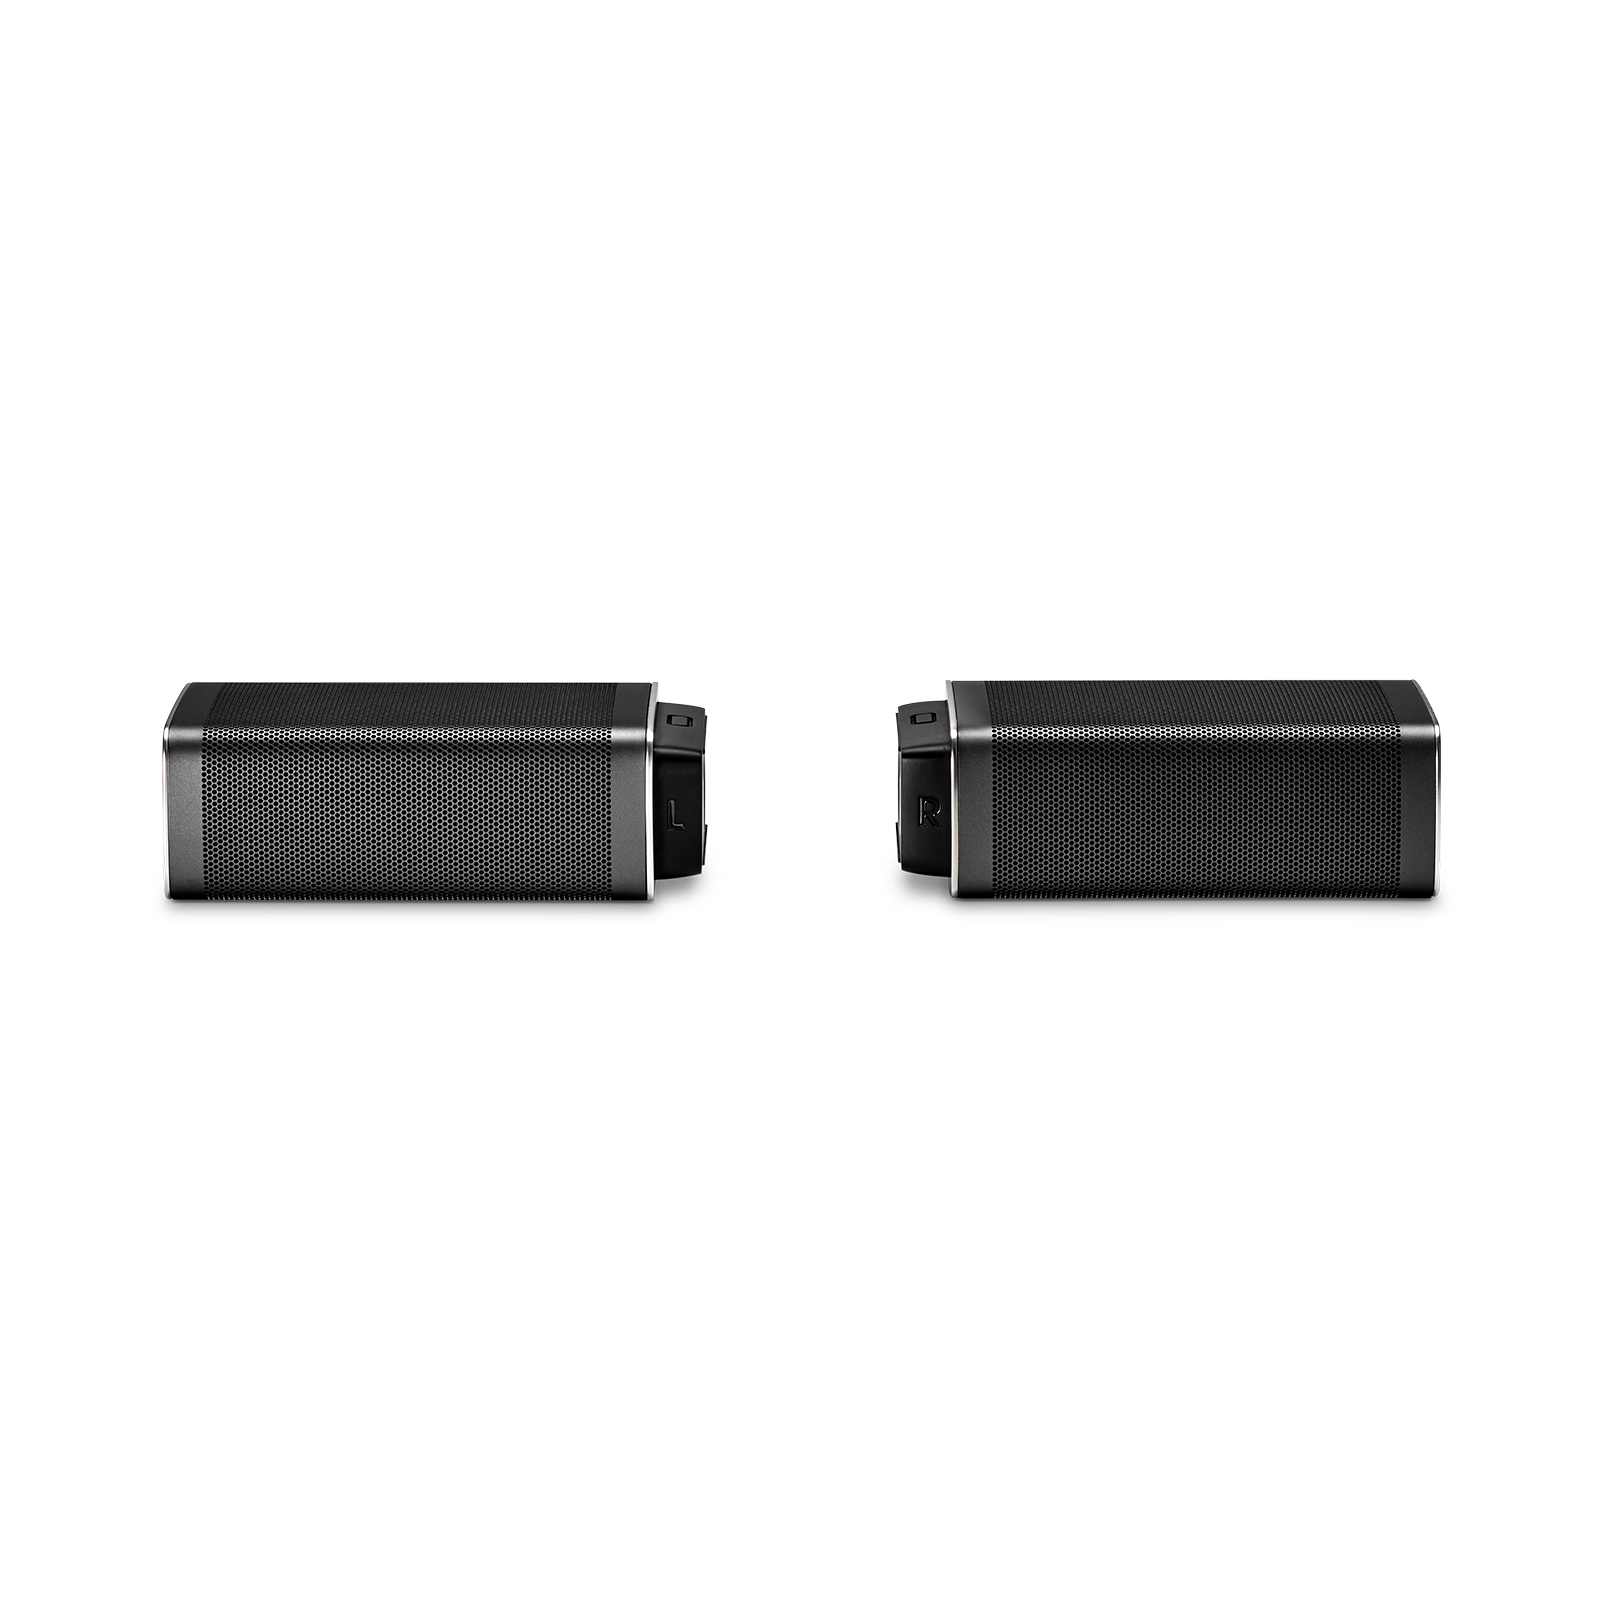 JBL Bar 5.1 - Black - 5.1-Channel 4K Ultra HD Soundbar with True Wireless Surround Speakers - Detailshot 4